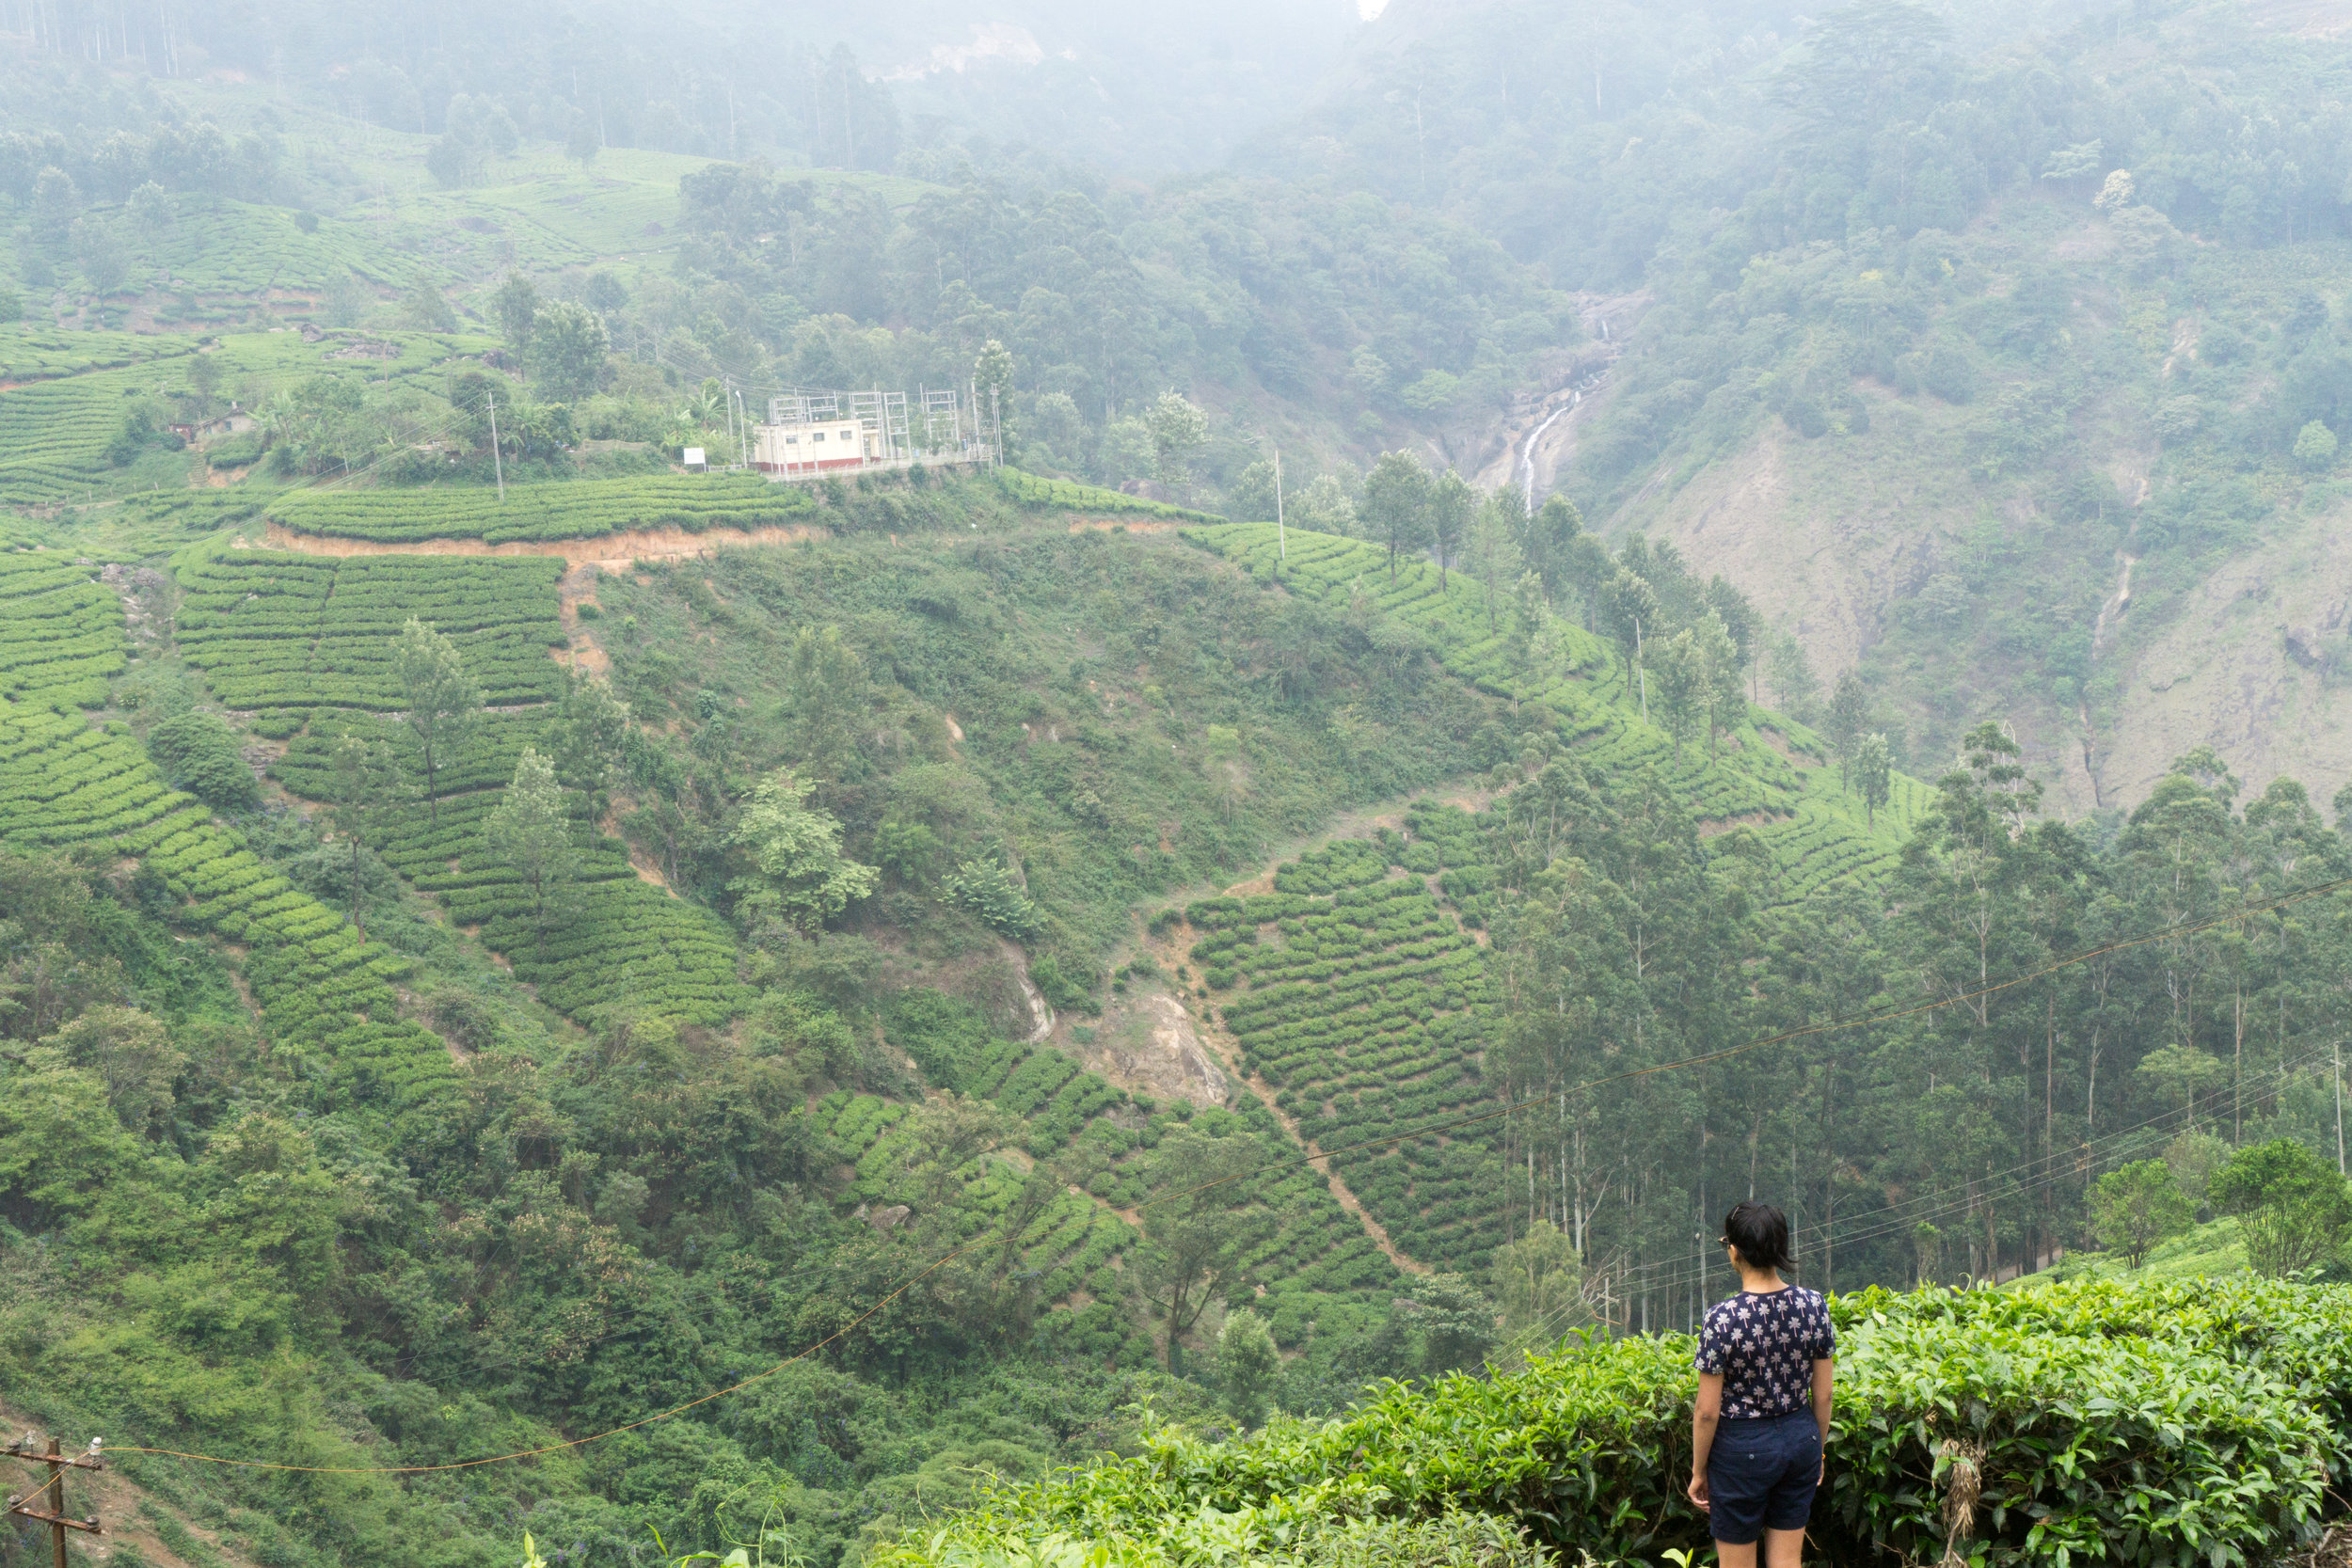 Hiking around the tea plantations of Munnar